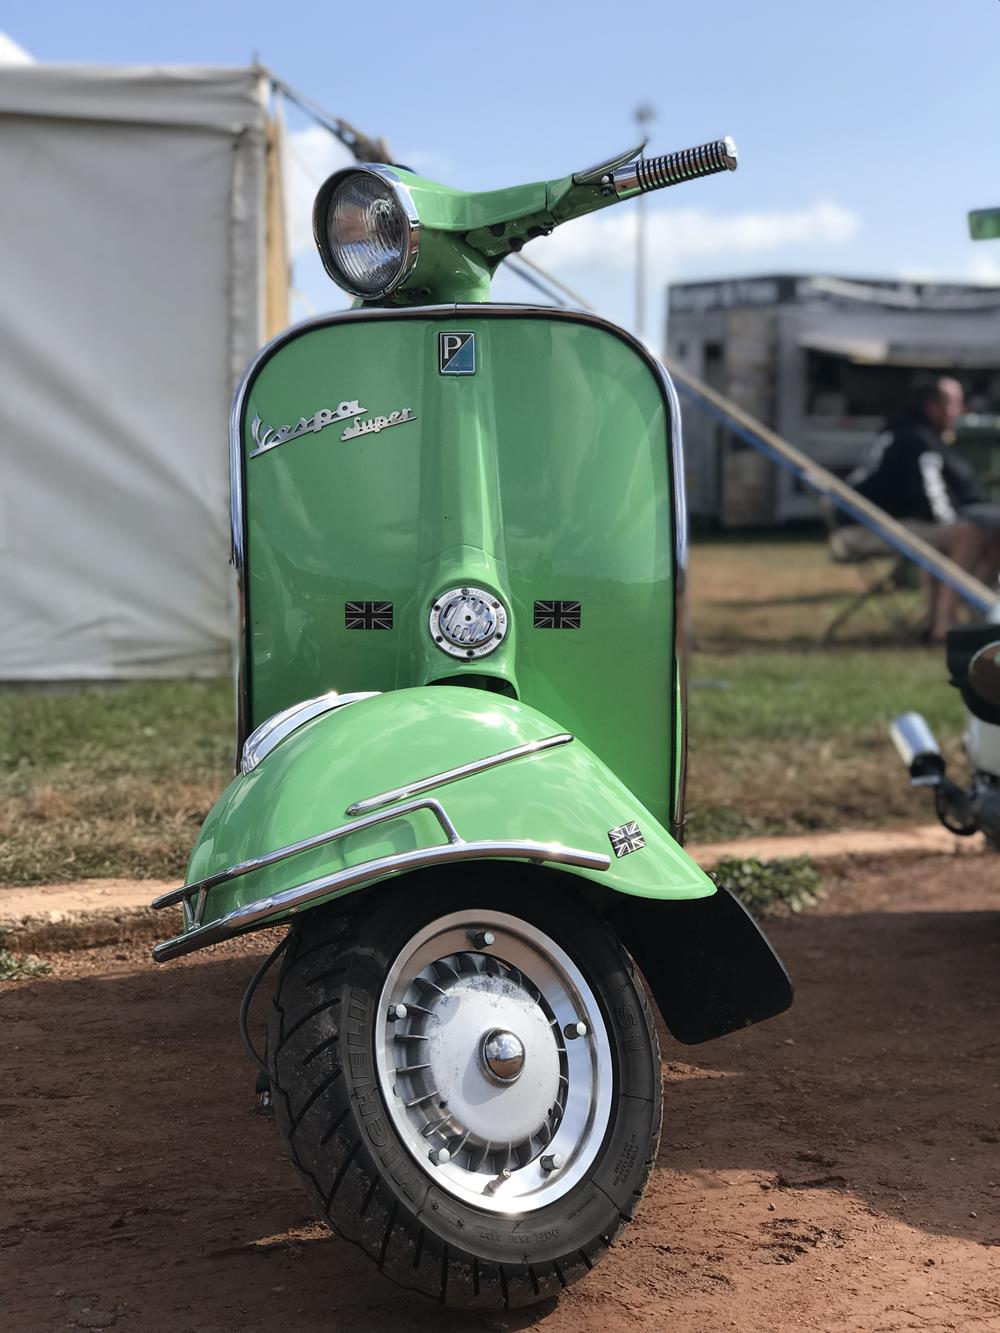 Green Vespa Super scooter